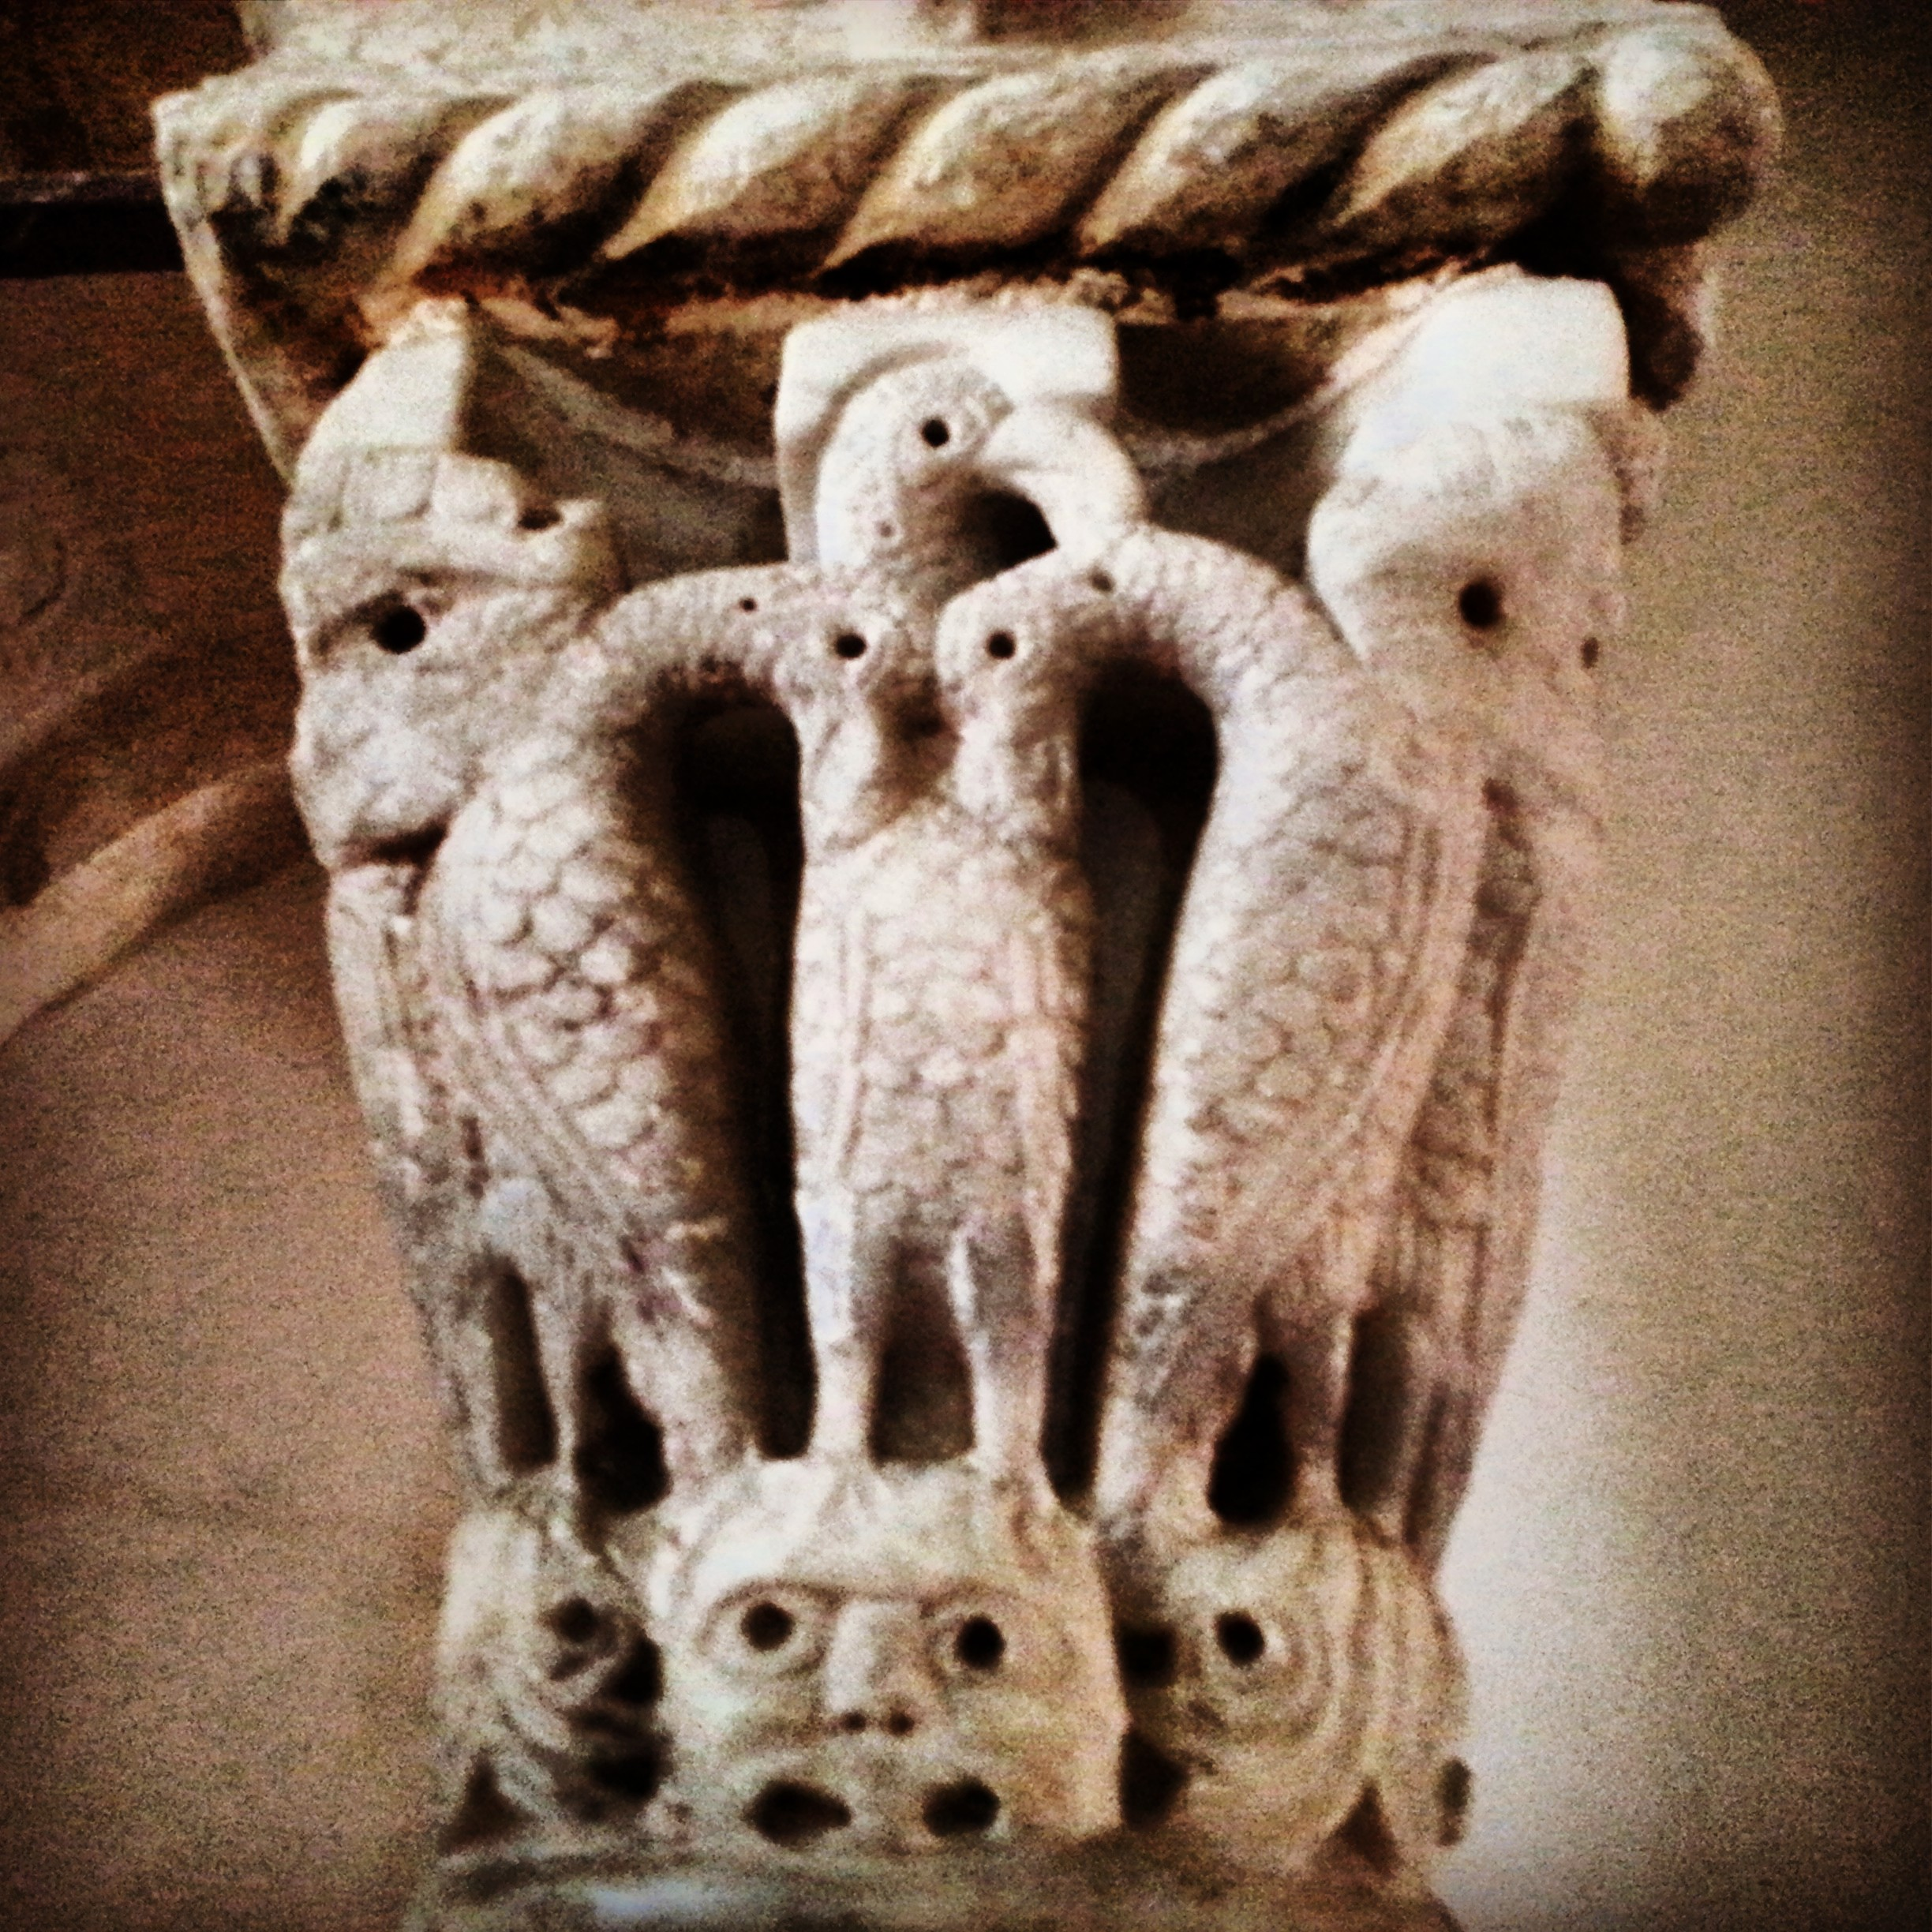 Crusader capital in the Last Supper Room (Cenacle)